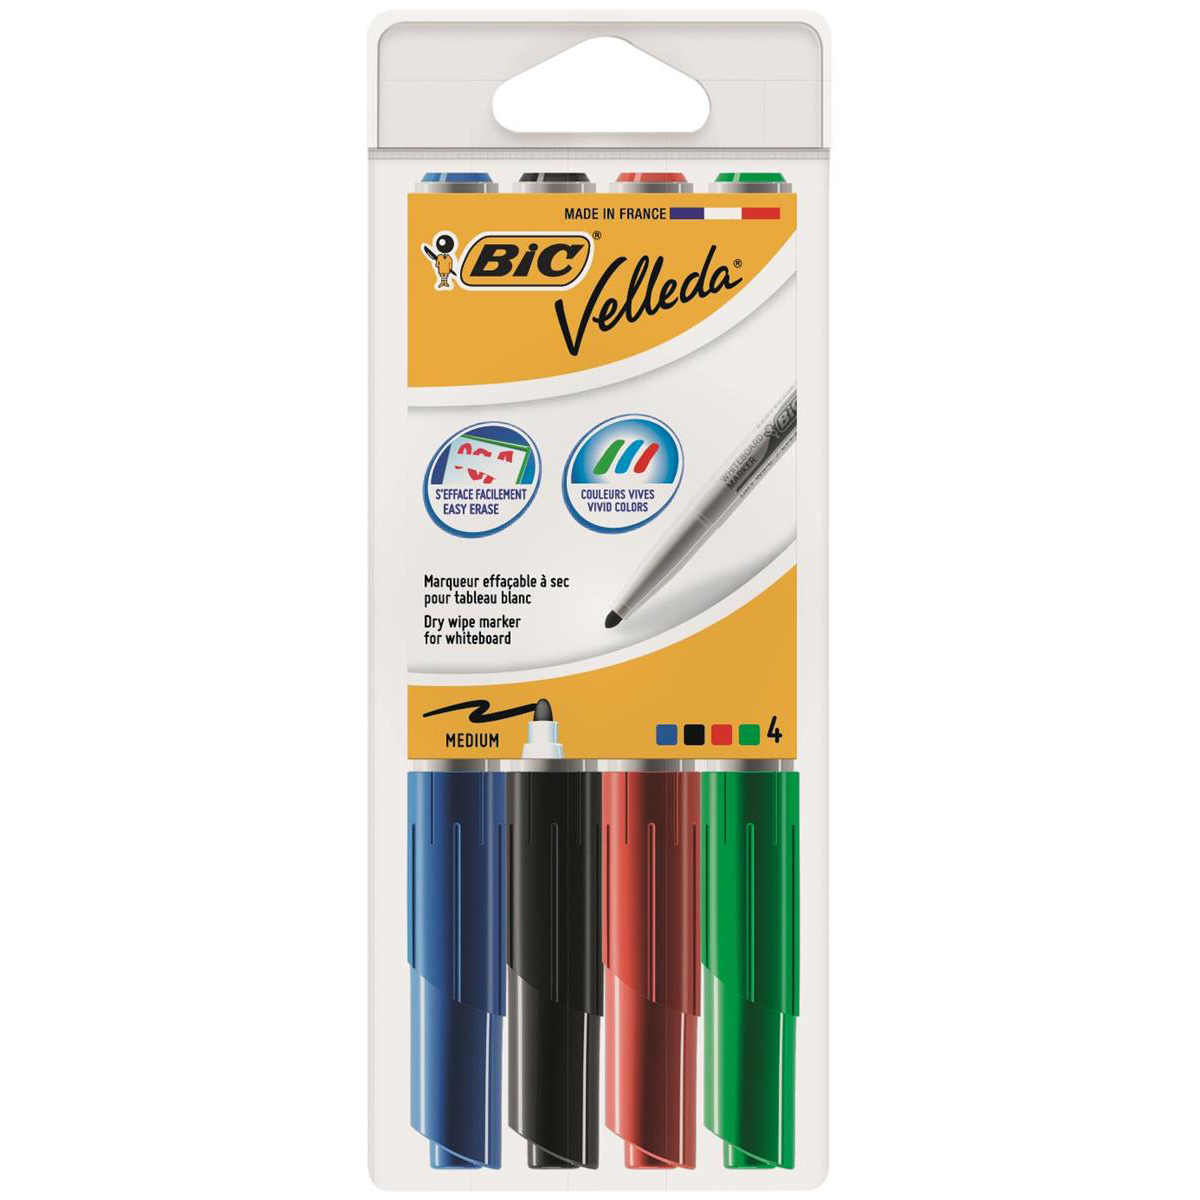 Bic Velleda 1741 Whiteboard Marker Bullet Tip Line Width 2mm Assorted Ref 1199001744 Wallet 4